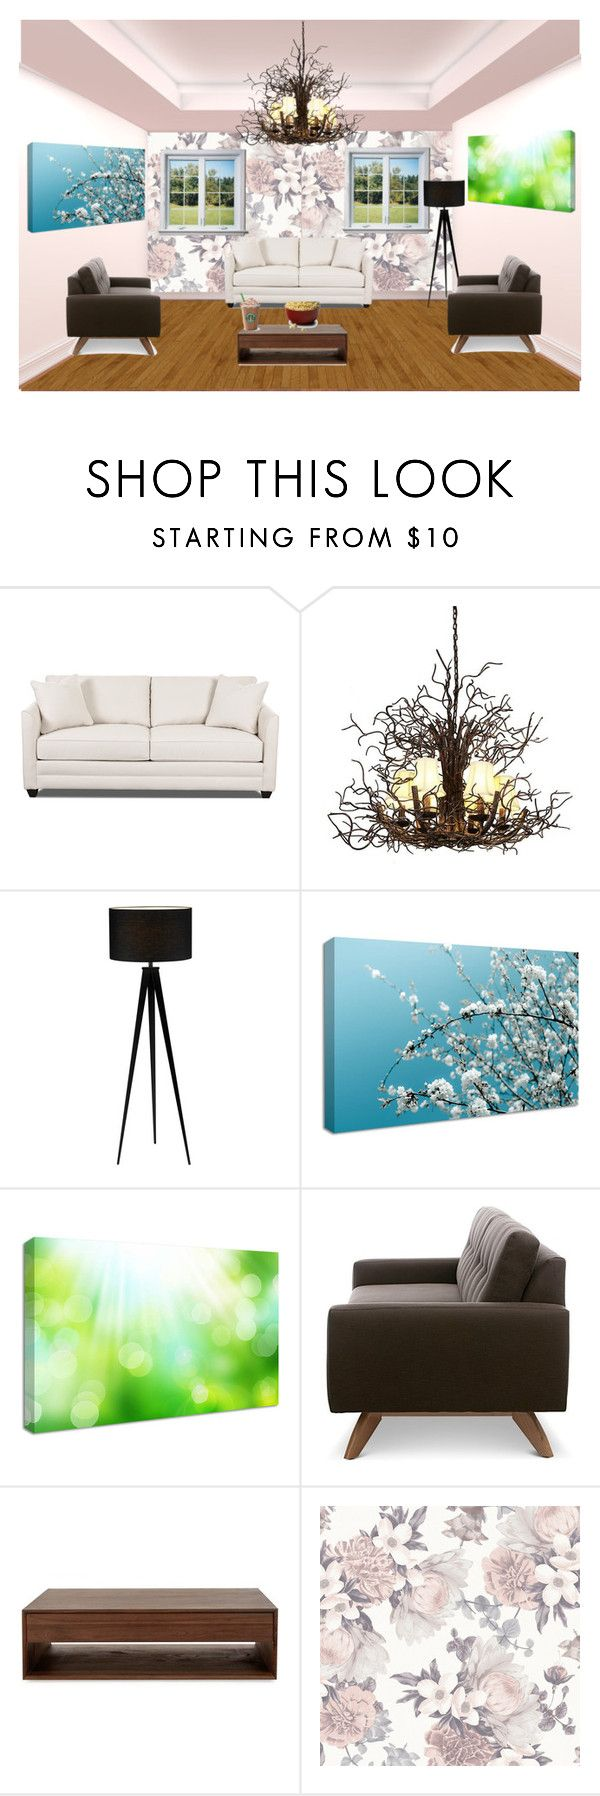 """Seating Room #1"" by taishacasimir ❤ liked on Polyvore featuring interior, interiors, interior design, home, home decor, interior decorating, Dot & Bo, TrueModern and Tempaper"